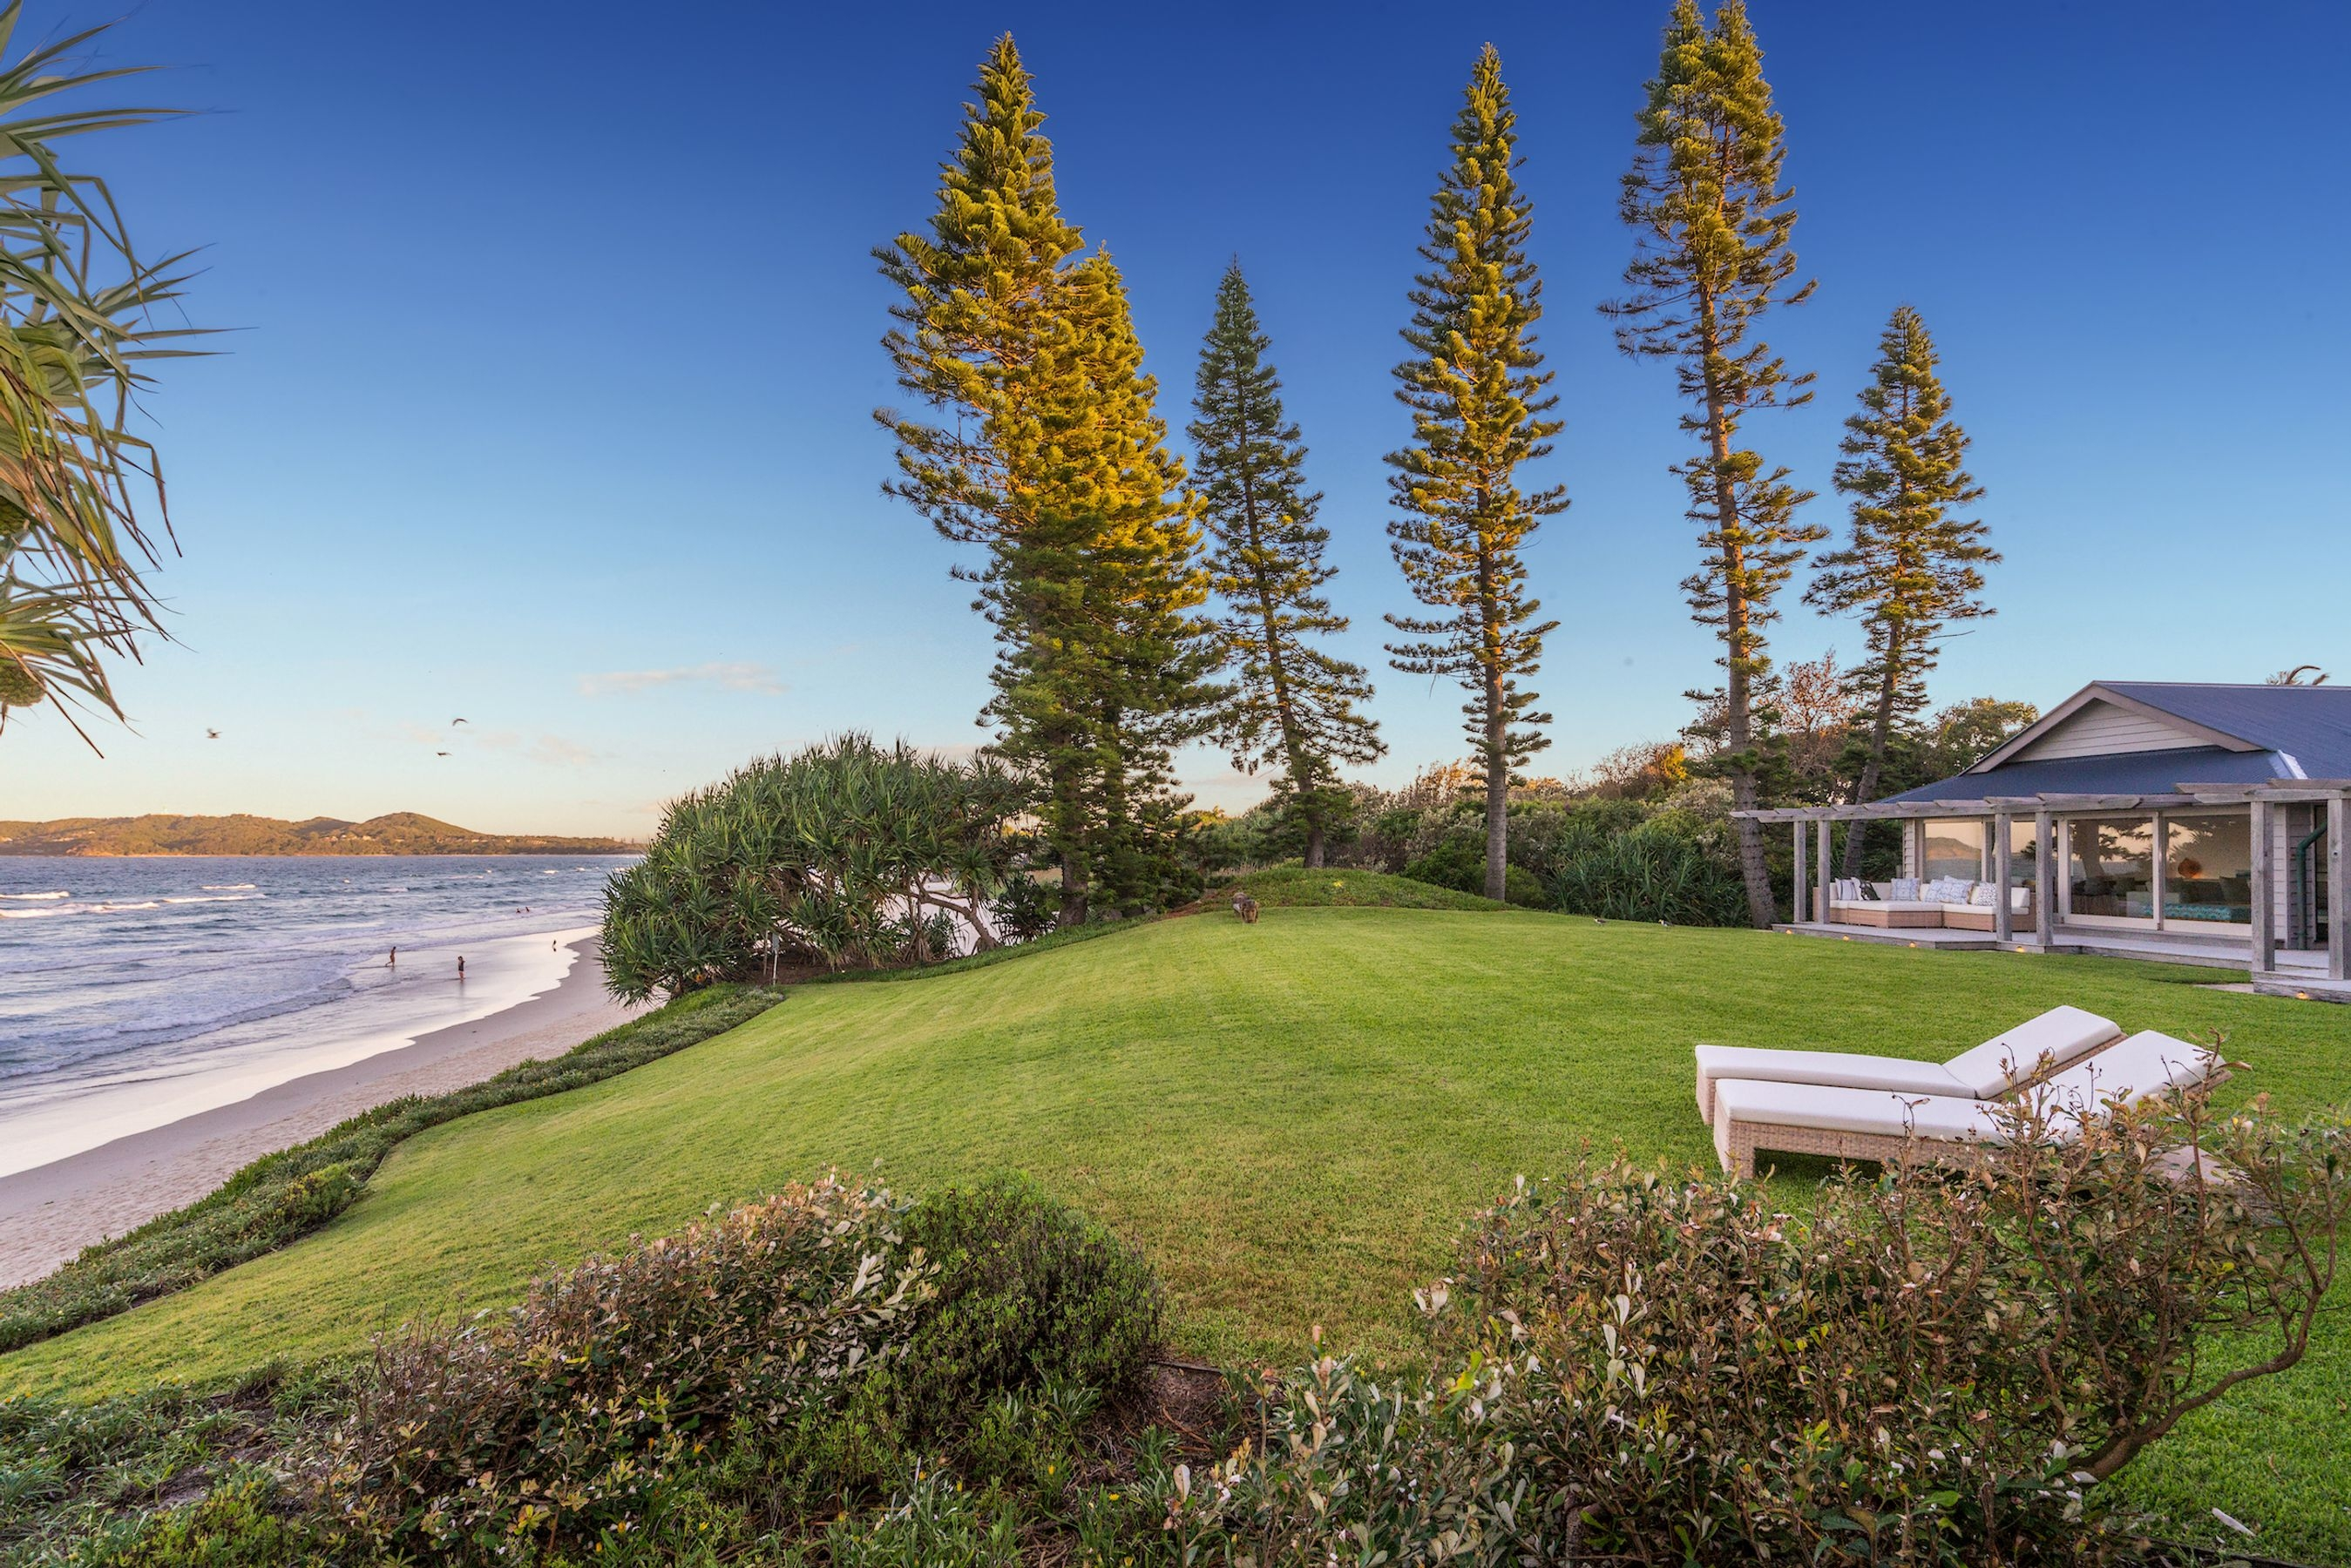 Oceania - Australia - New south wales area - Byron bay - The Residence at Belongil - Image 1/43